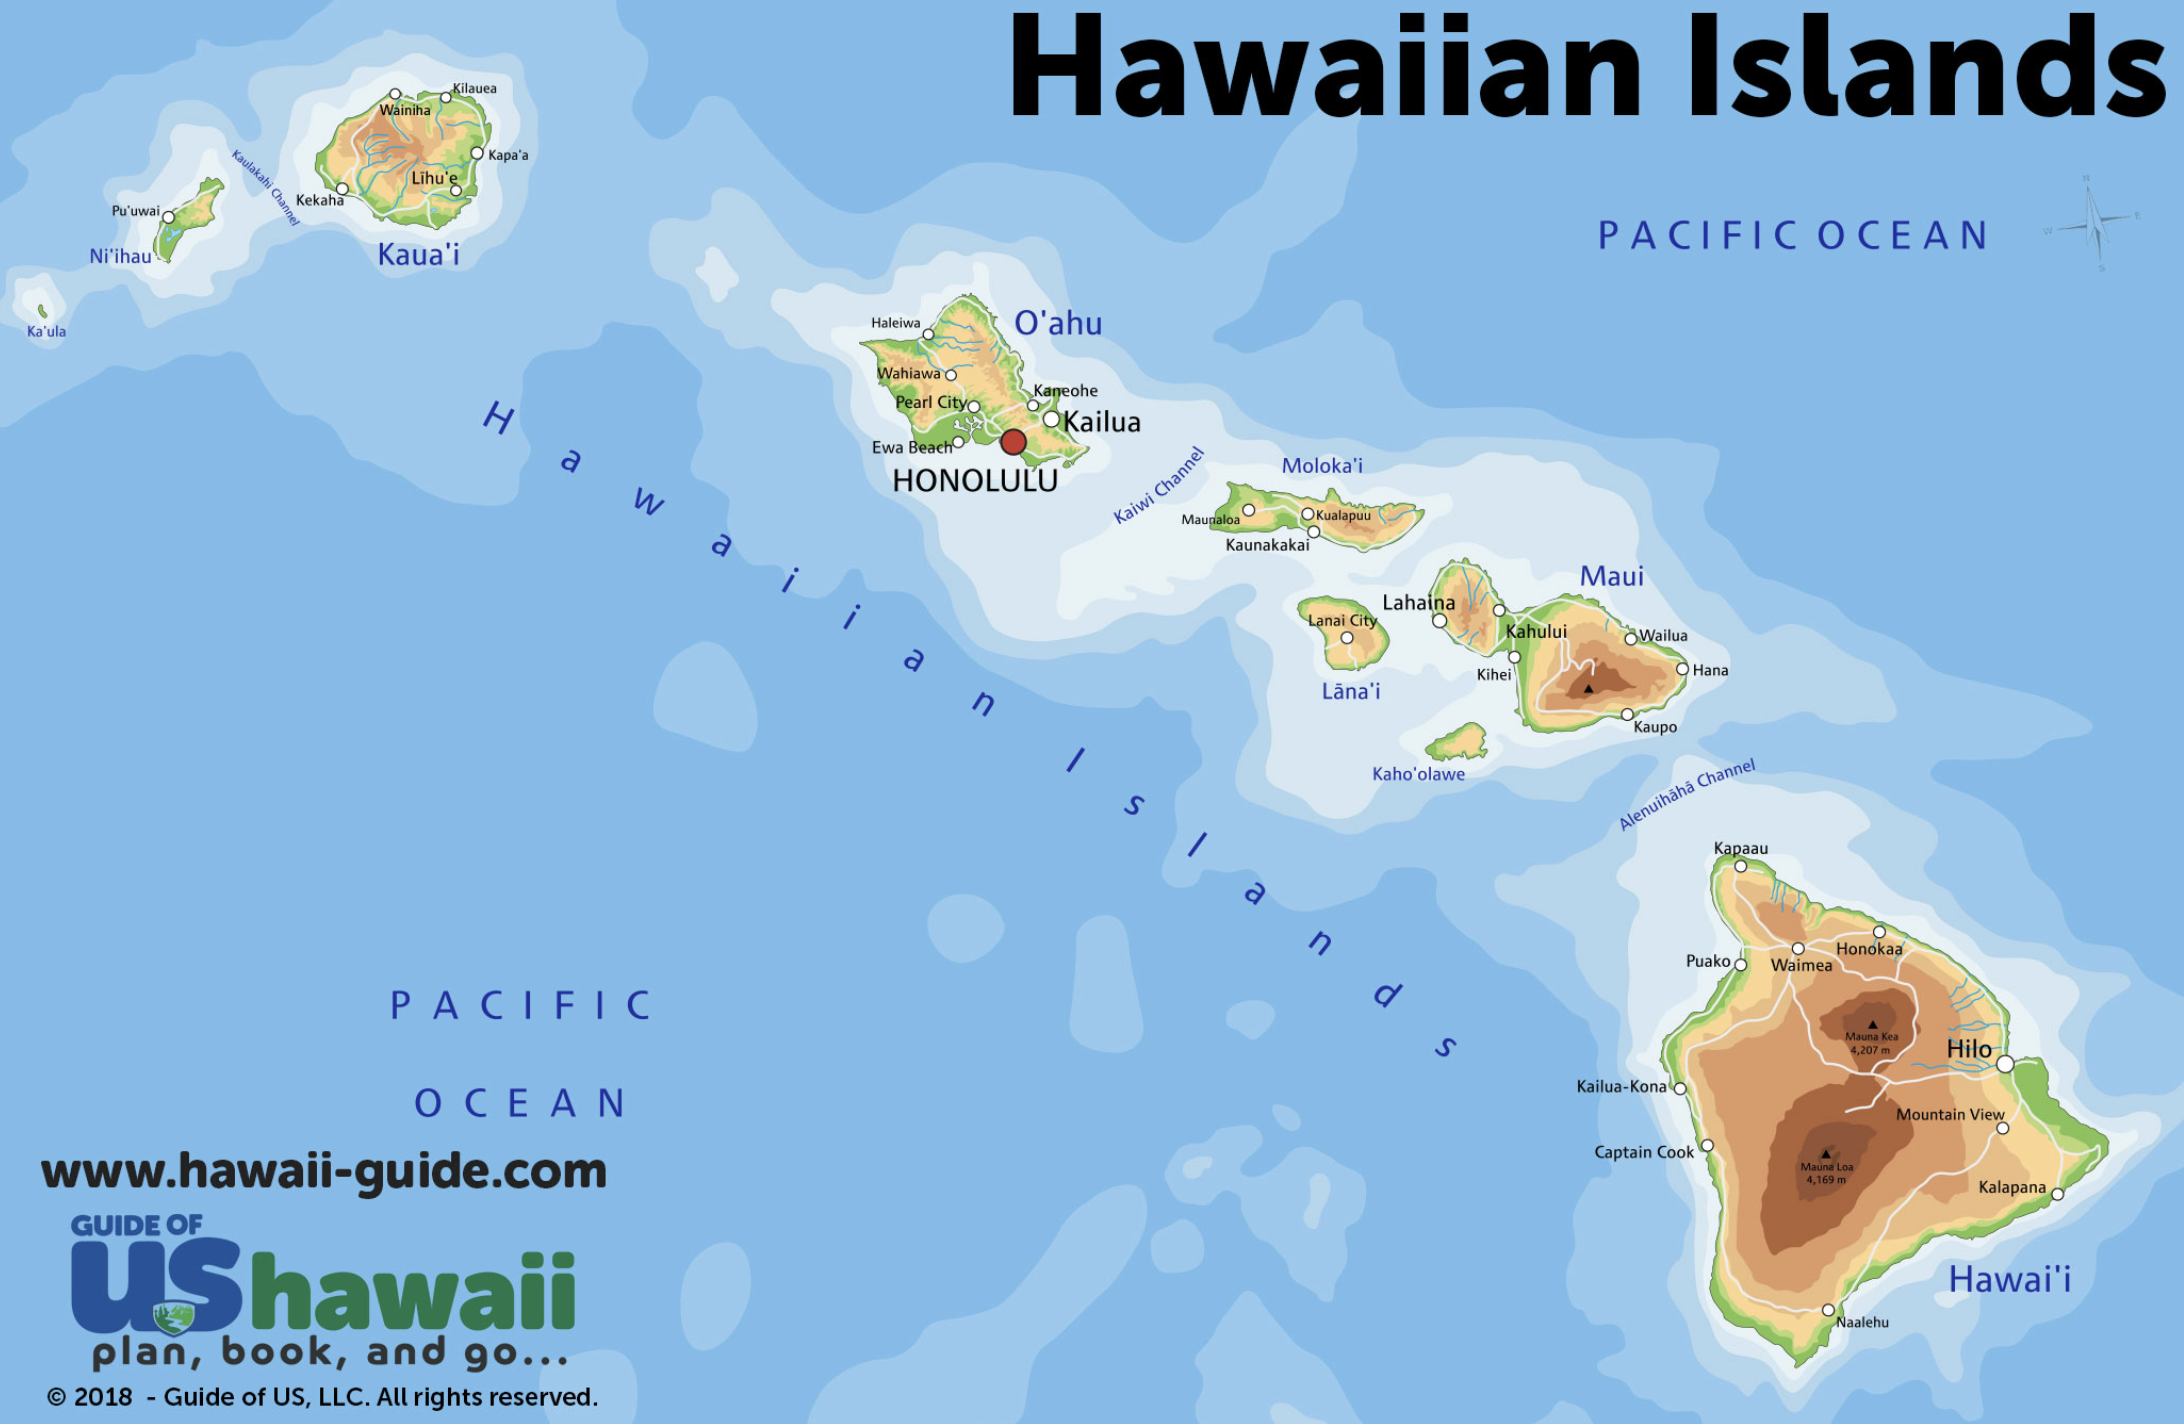 is wholesaling real estate legal in hawaii